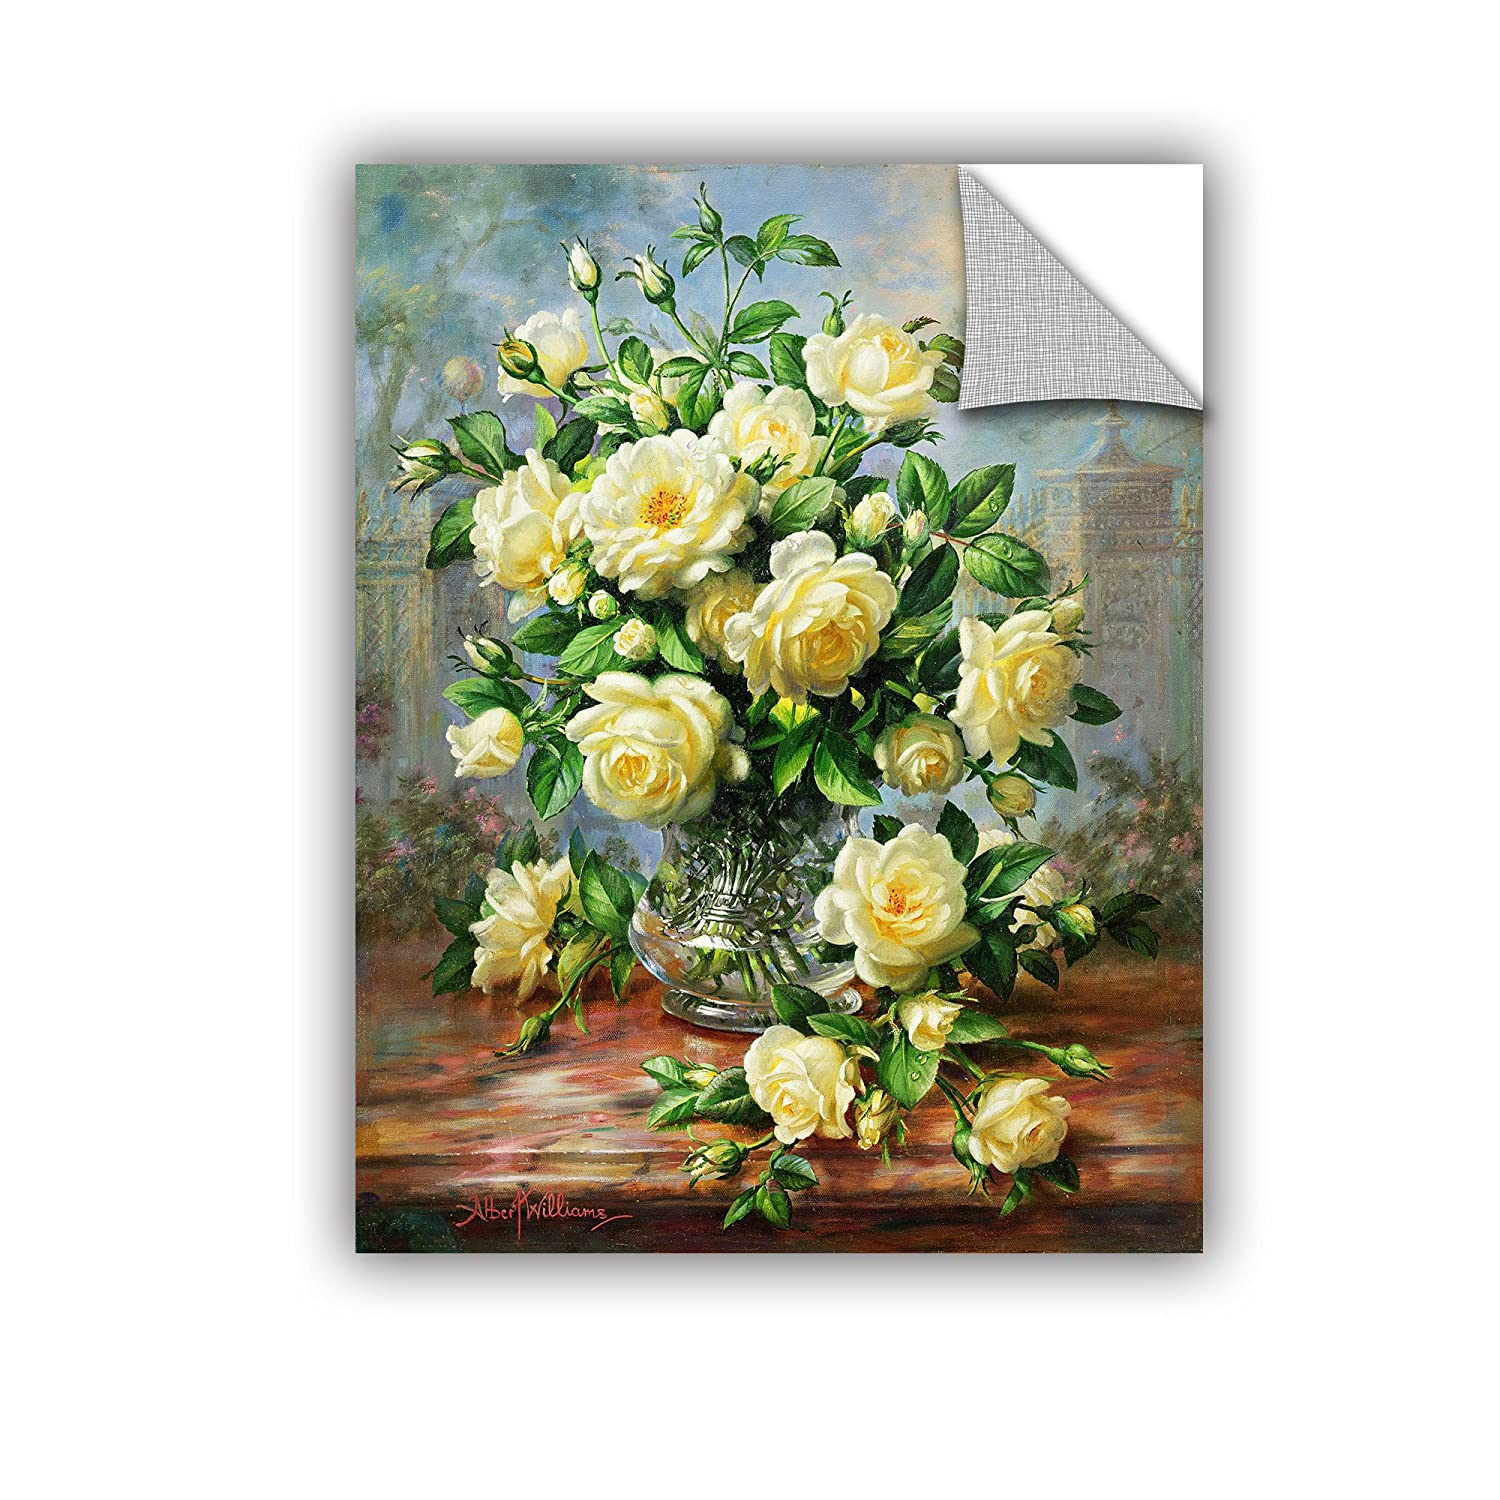 14 X 18 Art Appeelz Removable Wall Art Graphic Albert Williamss Princess Diana Roses in a Cut Glass Vase